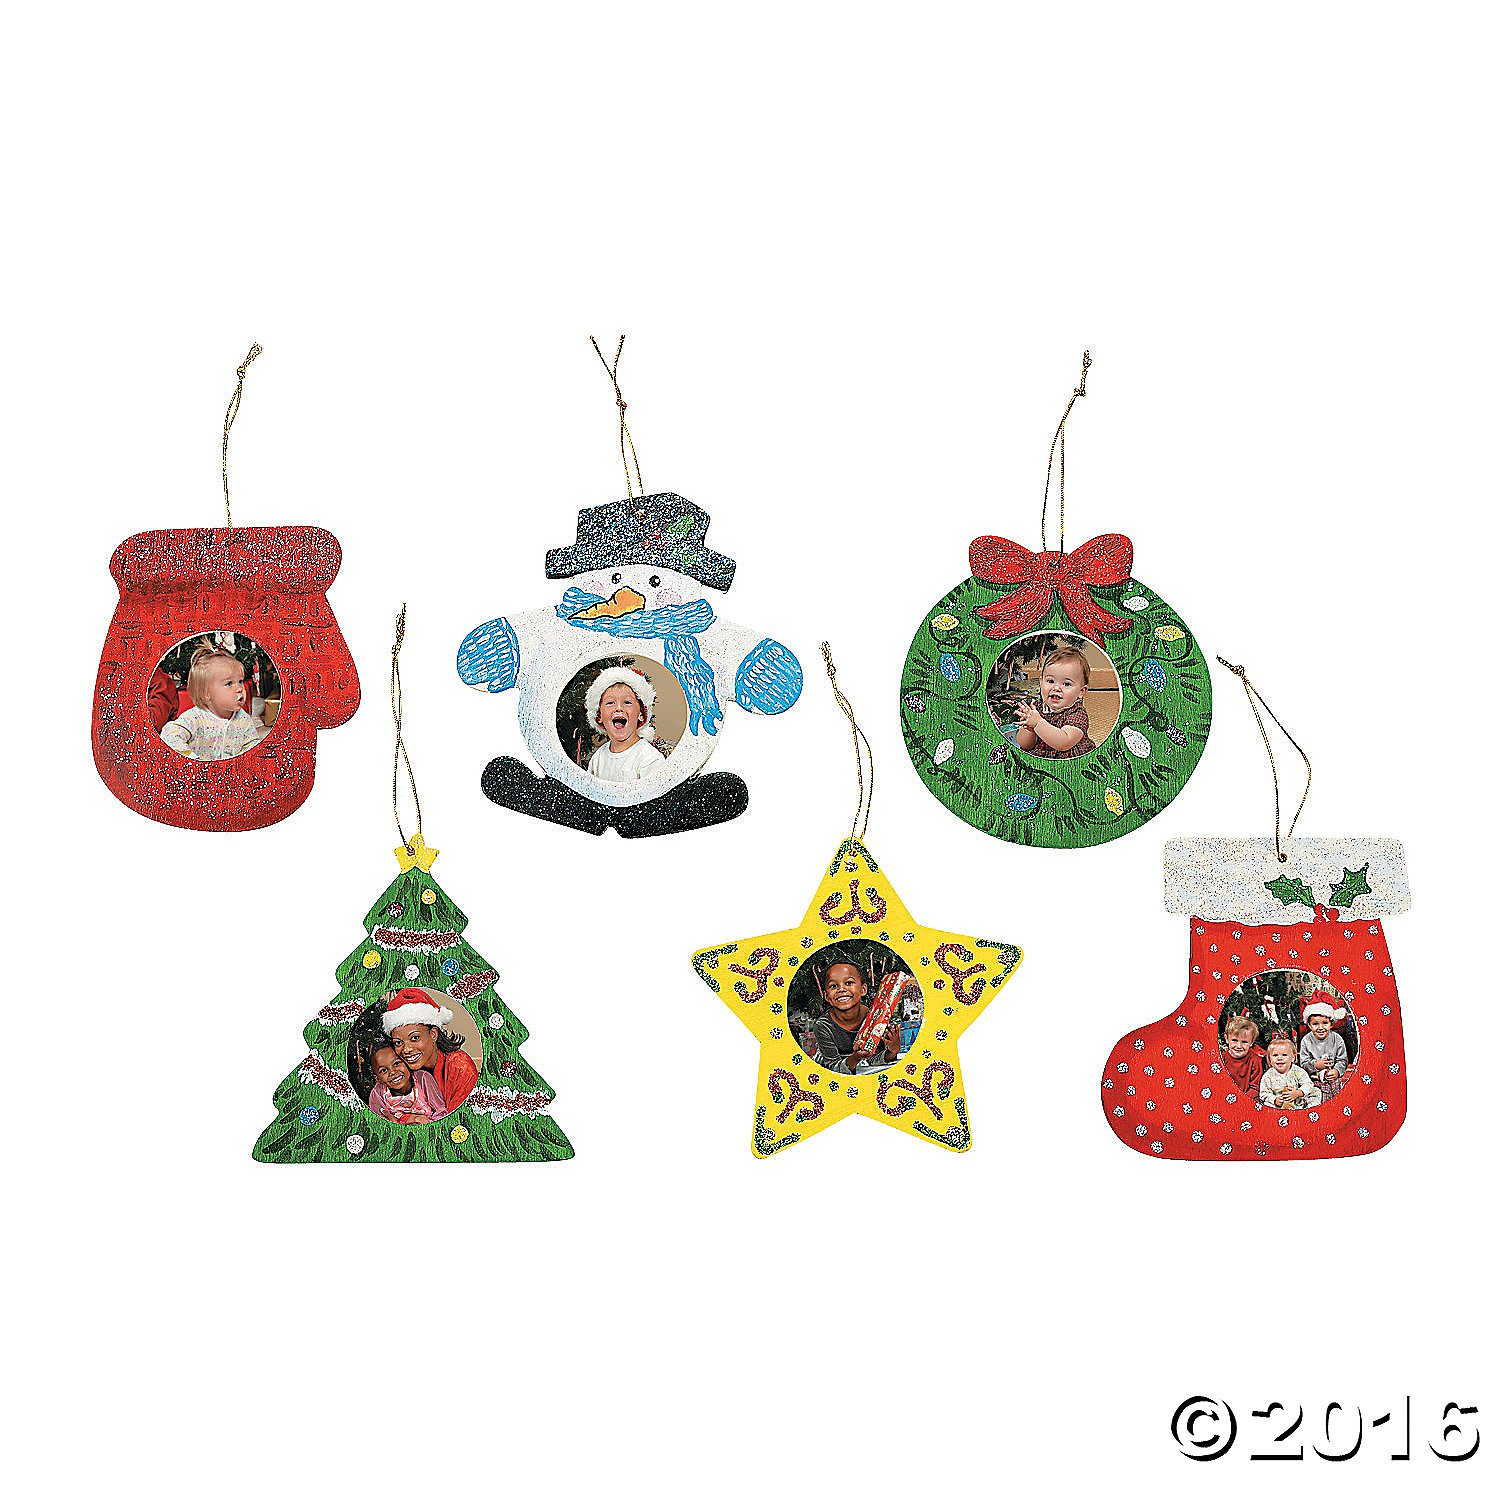 Personalized ornaments for kids - Unfinished Wooden Christmas Tree Ornaments With A Personalized Photo In The Middle